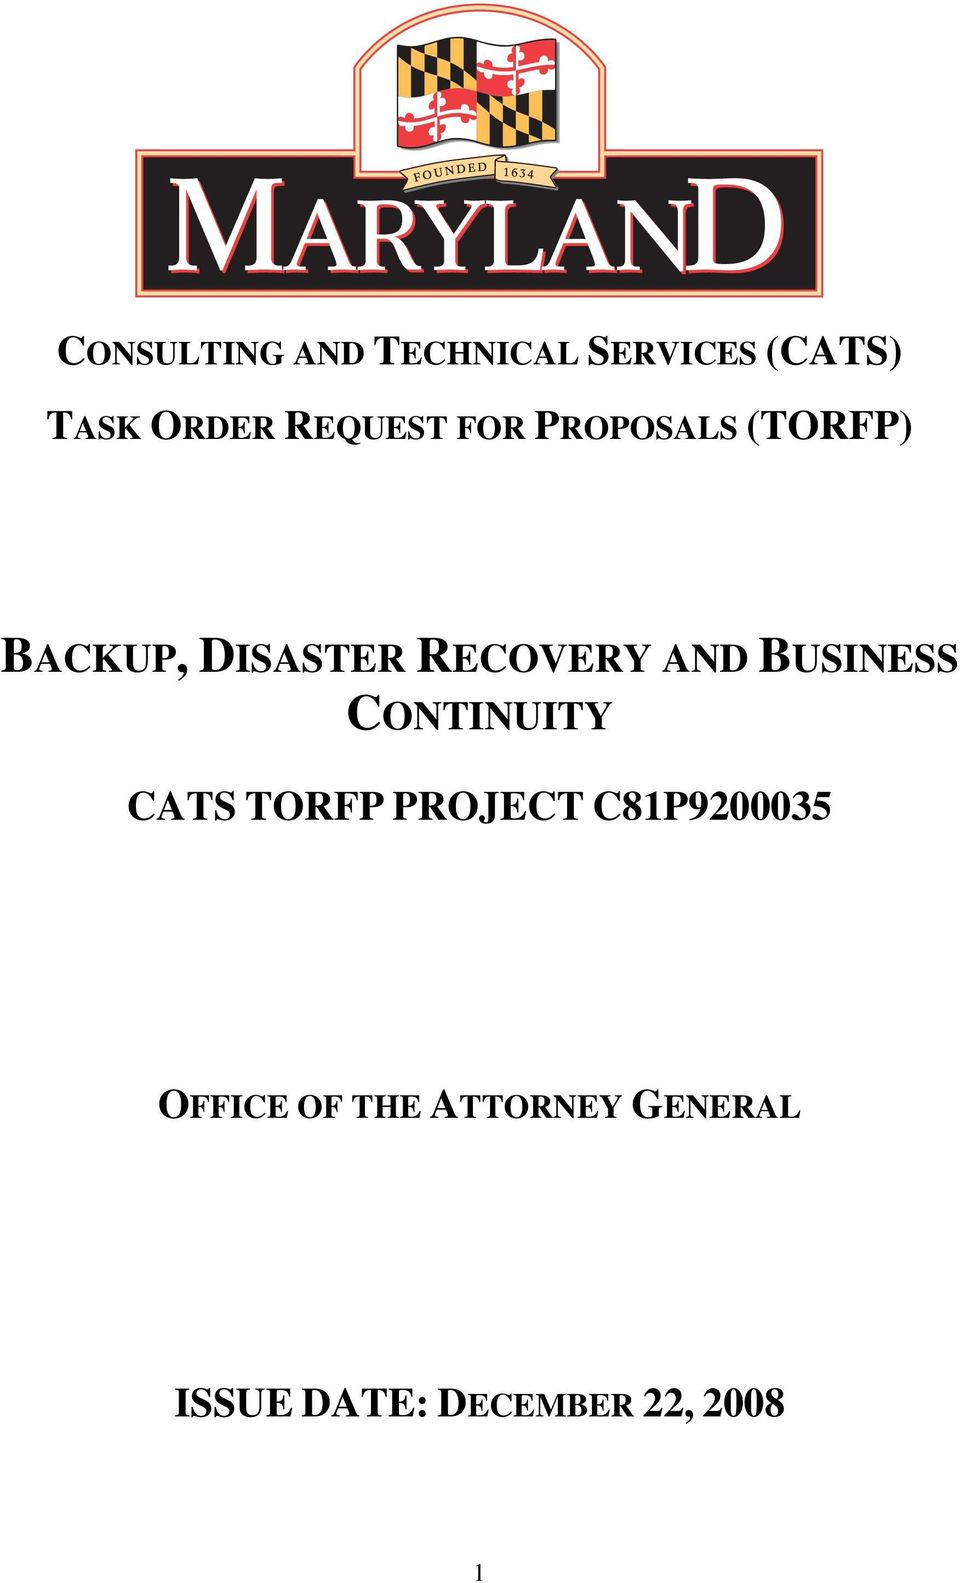 AND BUSINESS CONTINUITY CATS TORFP PROJECT C81P9200035